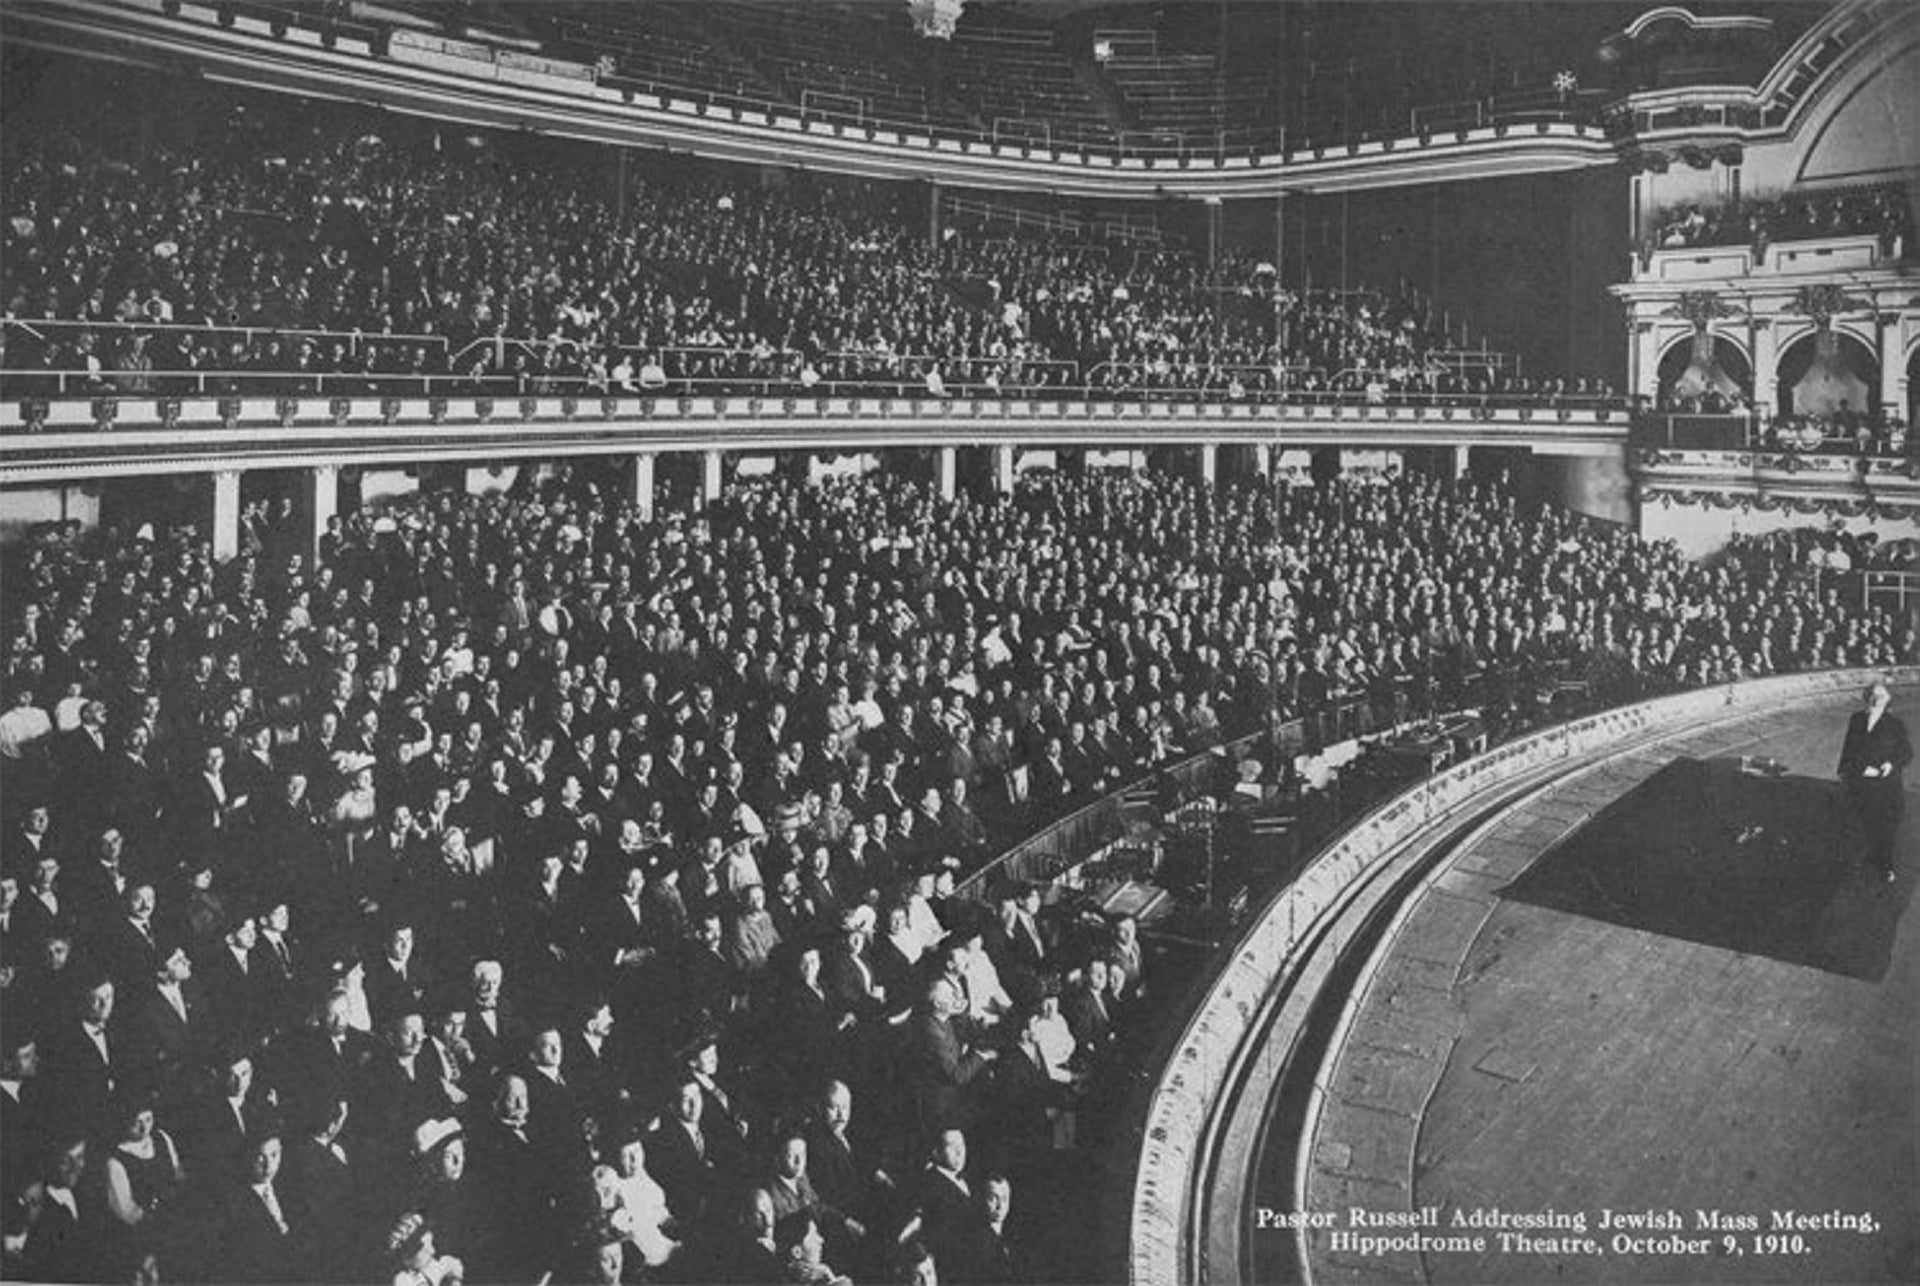 Pastor Russell holding a mass meeting with Jews at NY's Hippodrome theatre